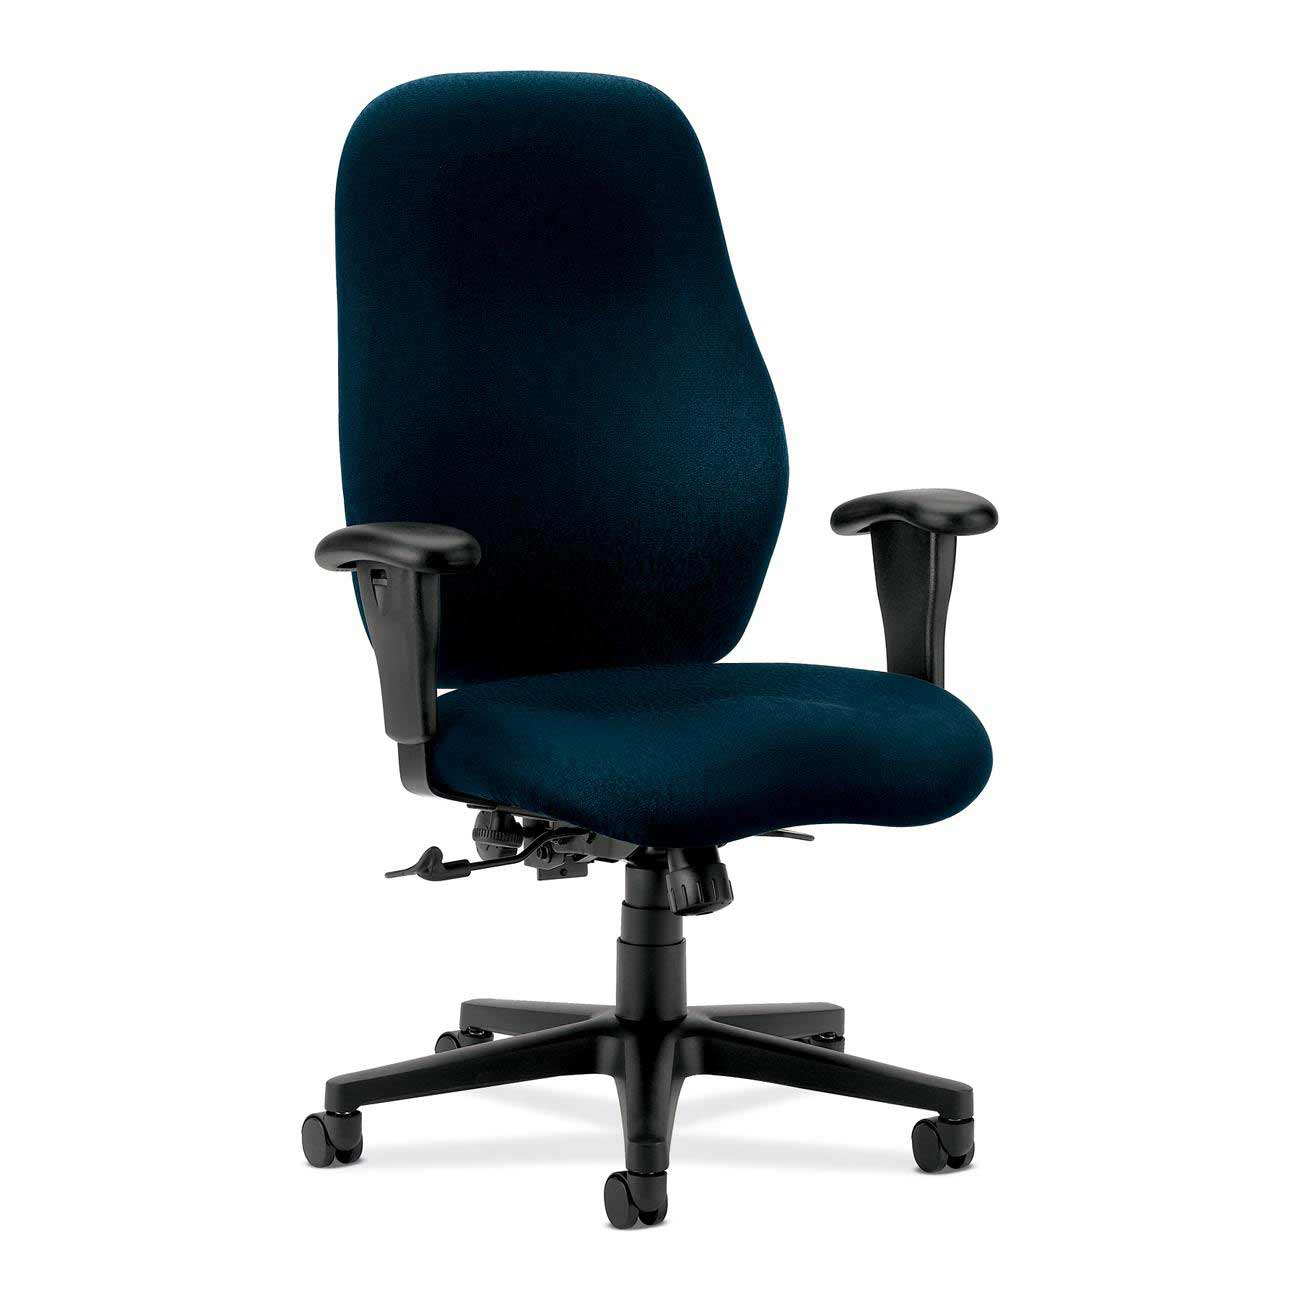 HON 7800 adjustable ergonomic office task chairs